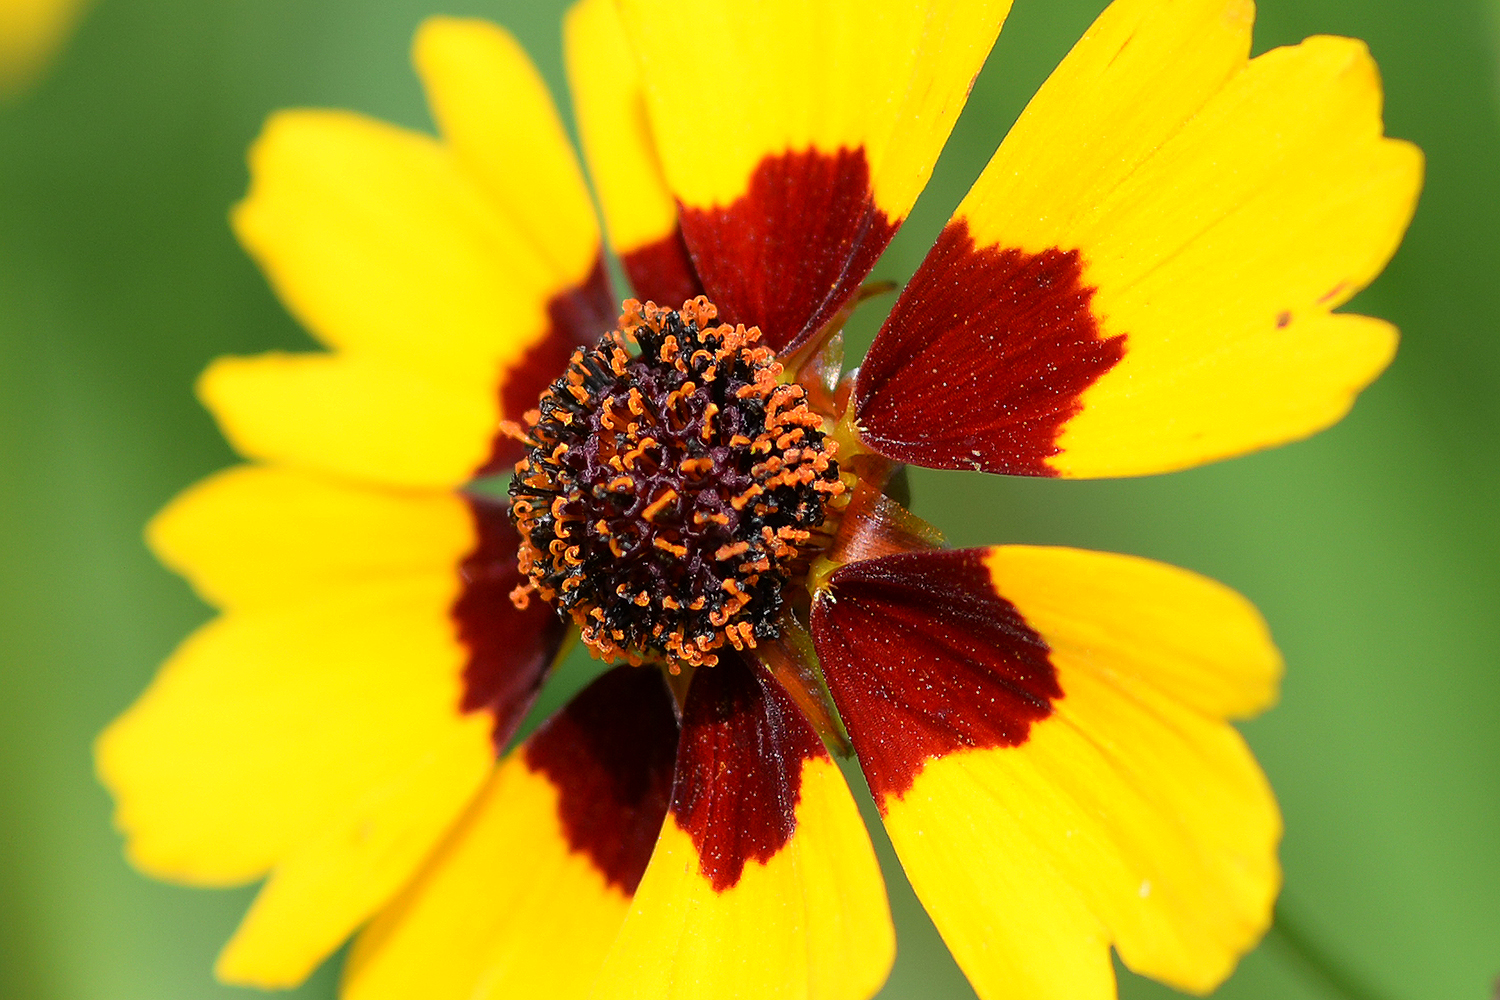 Plains coreopsis is often cultivated as a native plant for wildlife gardens and natural landscaping.